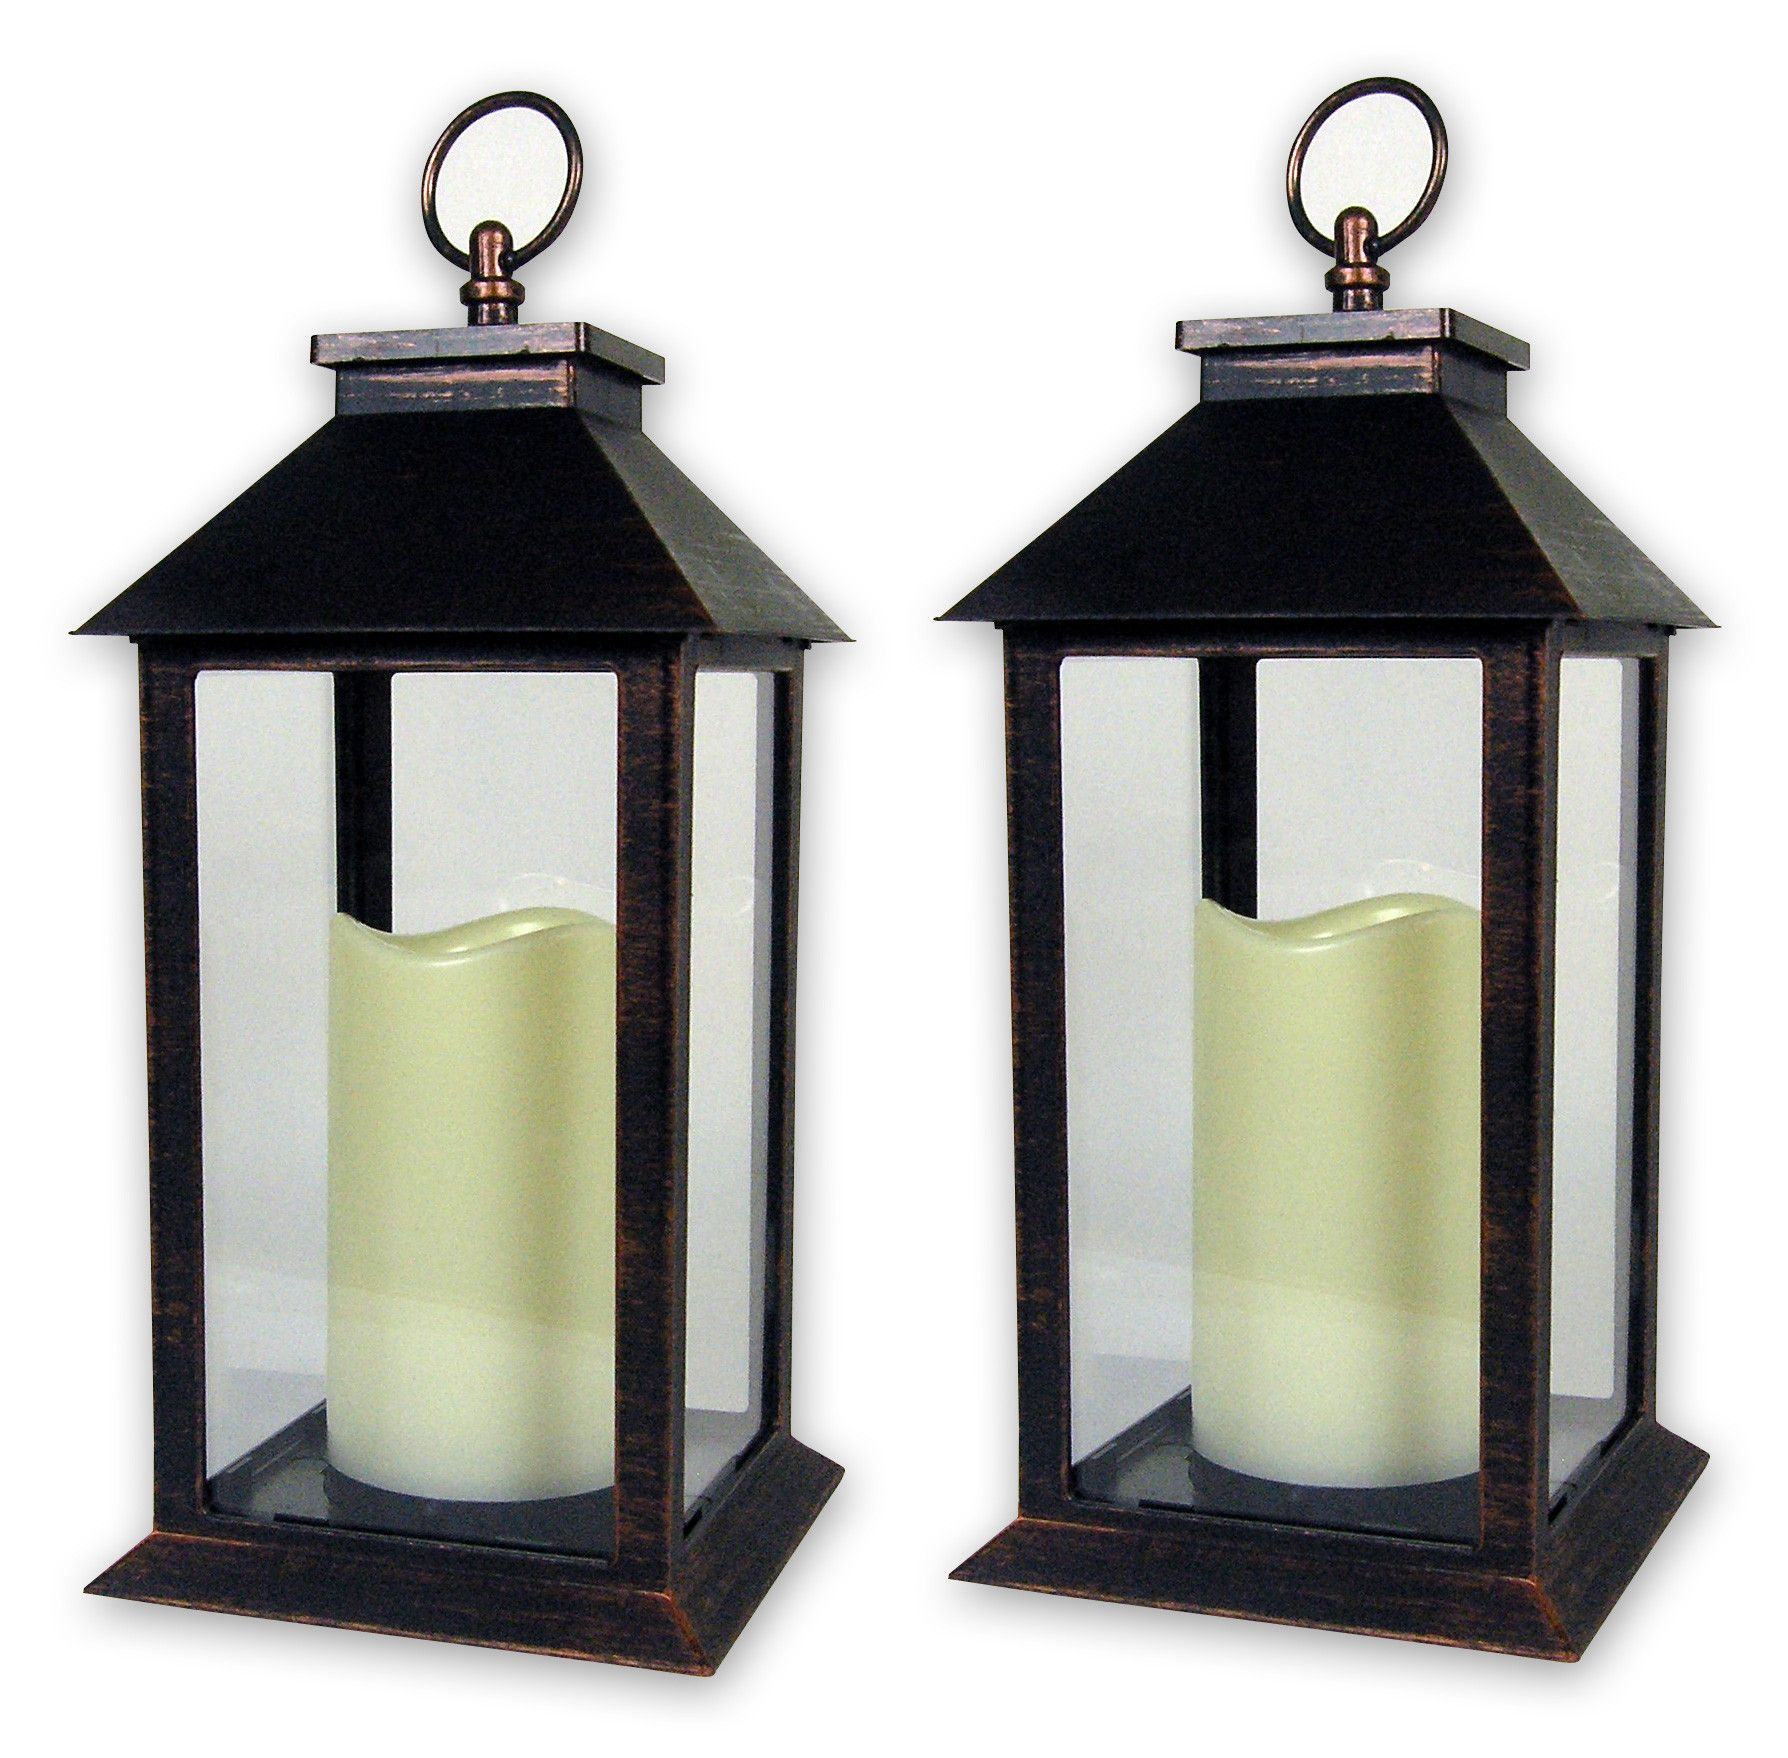 candle wedding decor decoration hanging lanterns design lantern decorative home montserrat